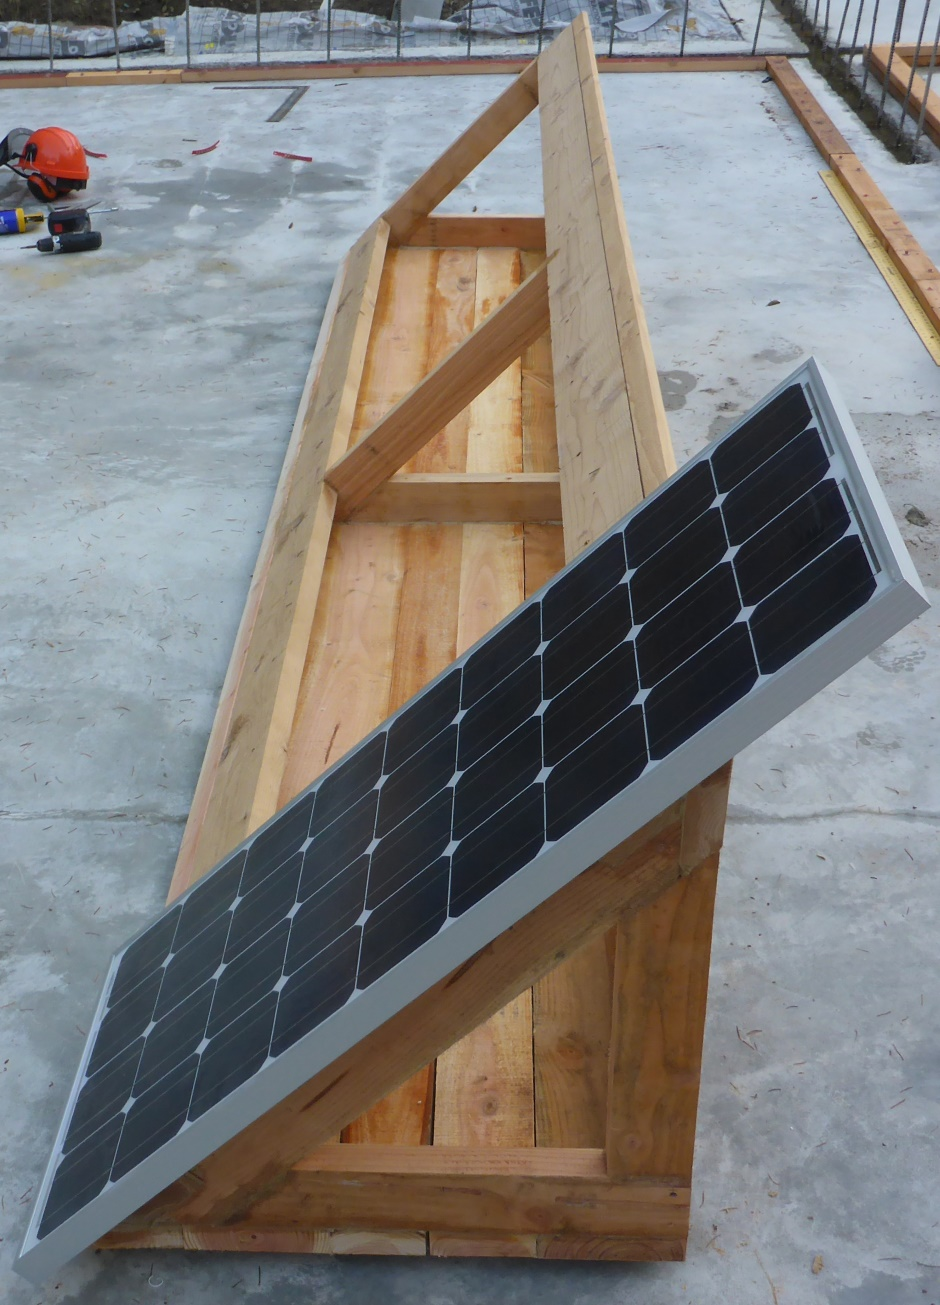 Solar Power Wiring The Into Epanel And Charge Controller On To One Panel Offered Up